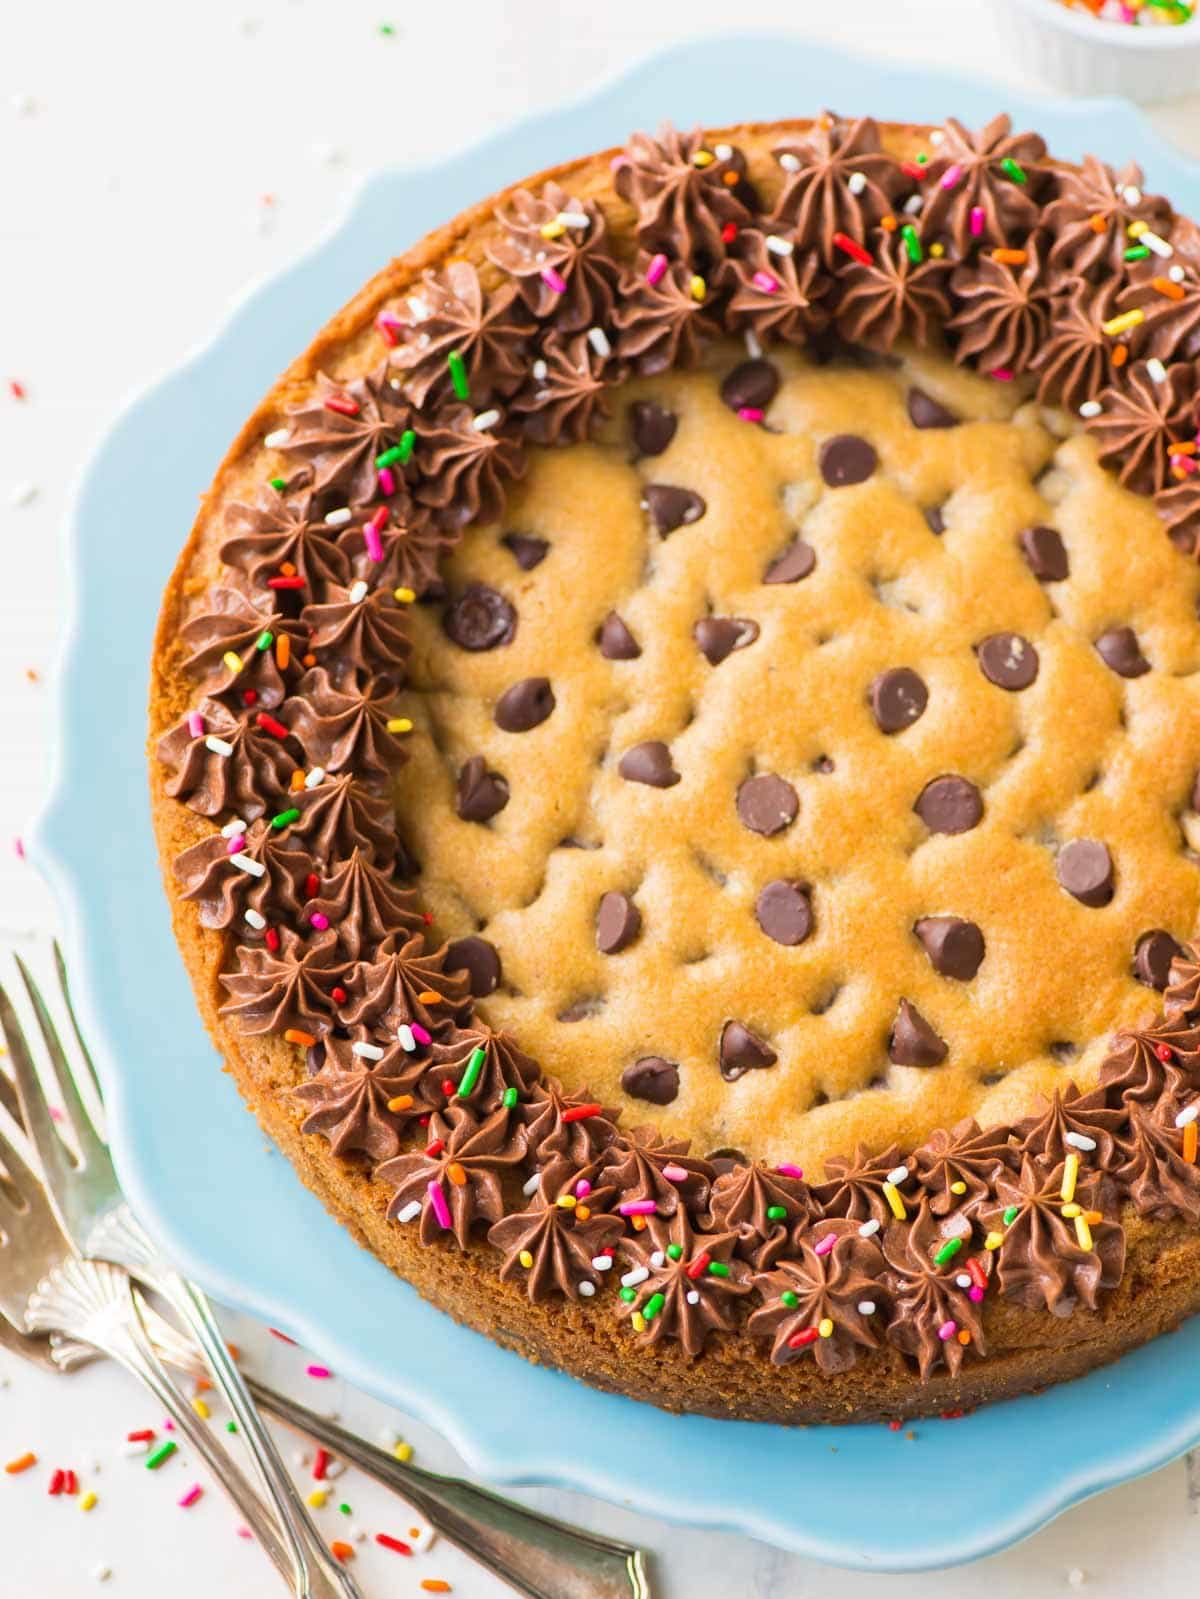 A beautifully decorated chocolate chip cookie cake on a blue plate